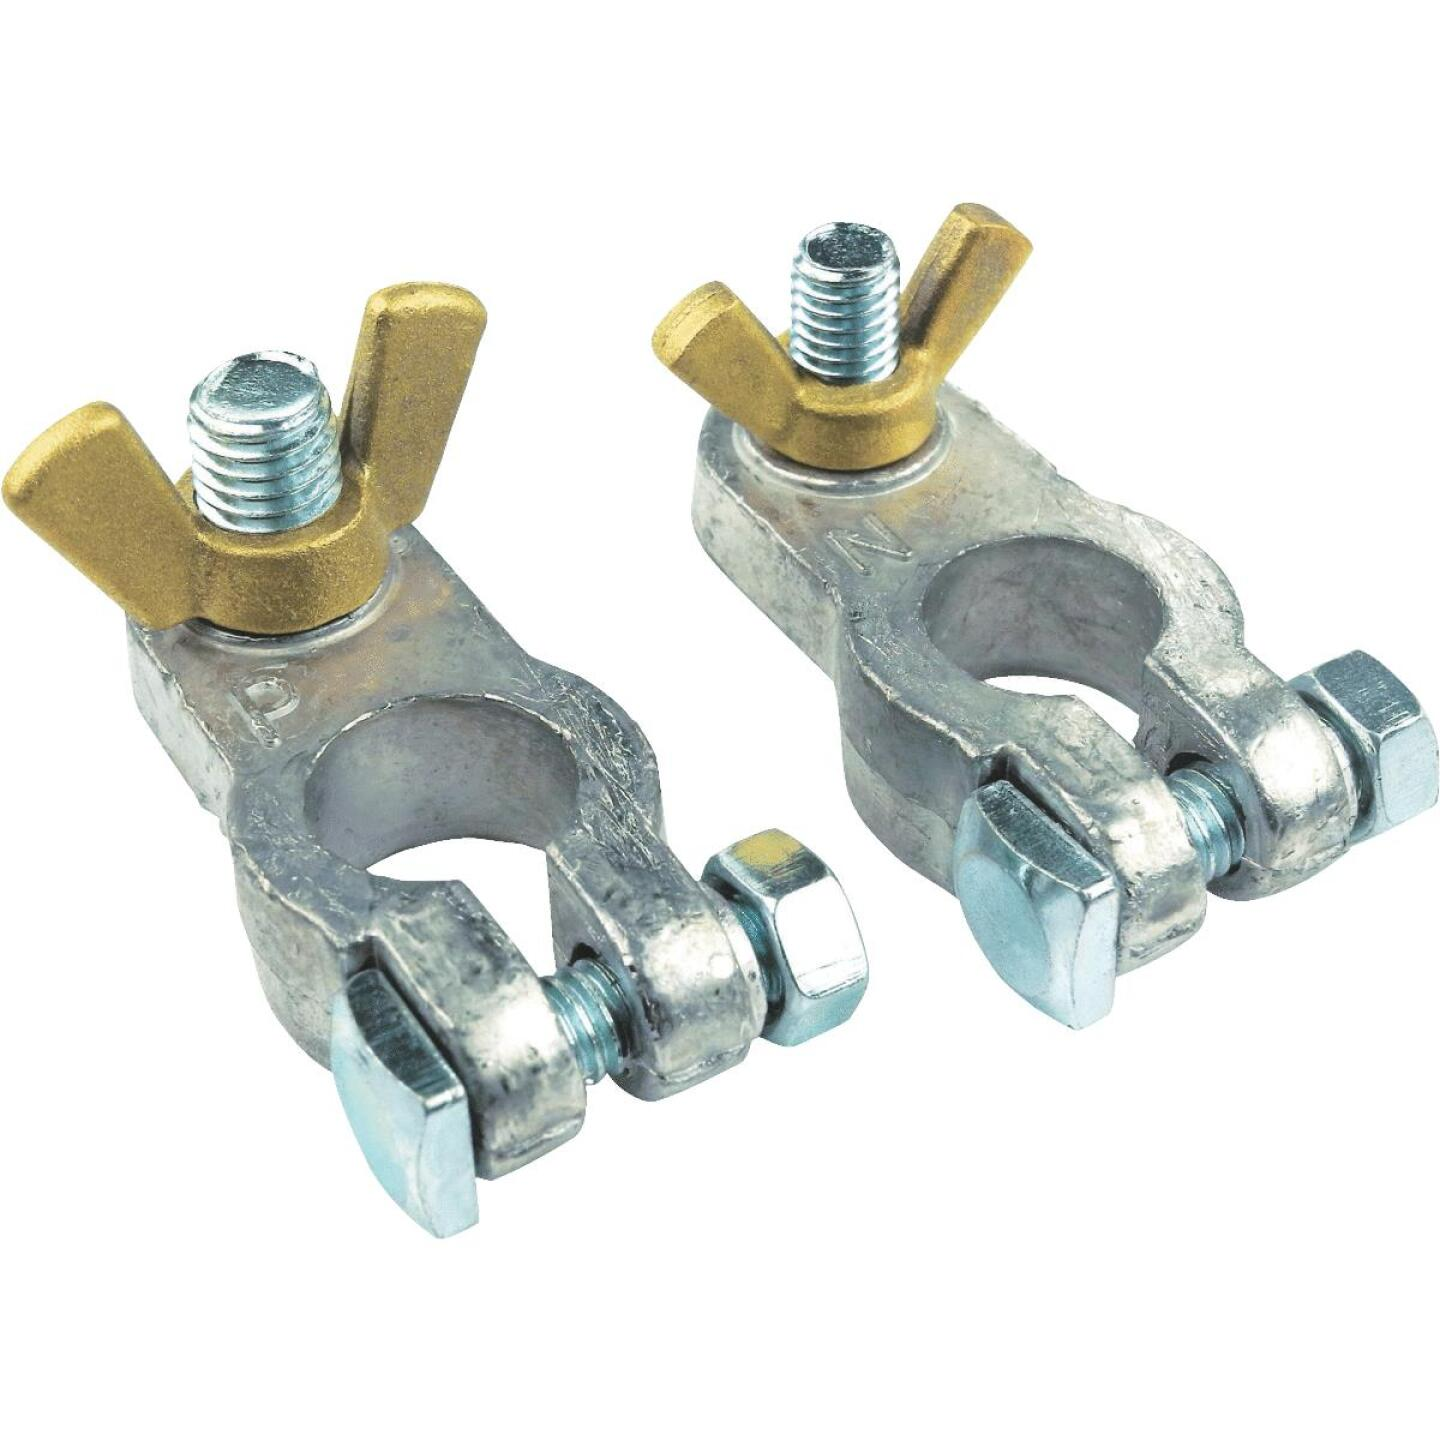 Seachoice Clamp Wing Nut Lead Alloy Battery Terminal, (2-Count) Image 1